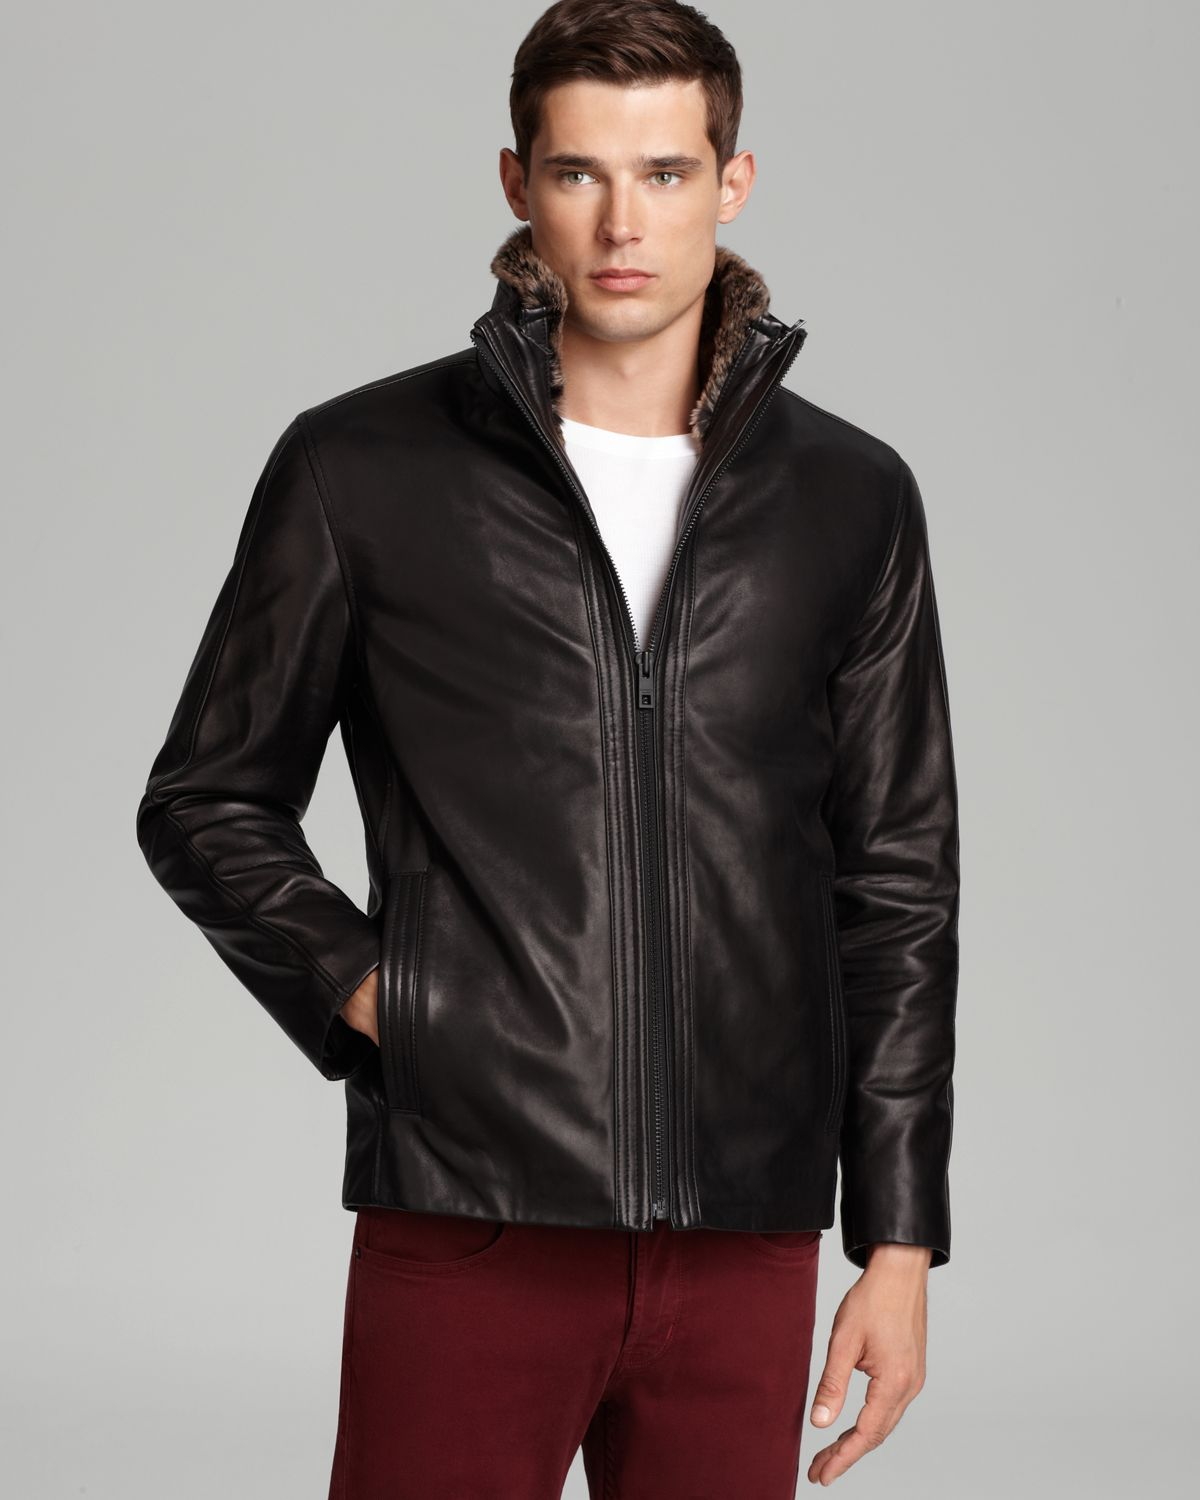 Mens jacket lined with fur - Andrew Marc Sawyer Leather Jacket With Fur Vest In Black For Men